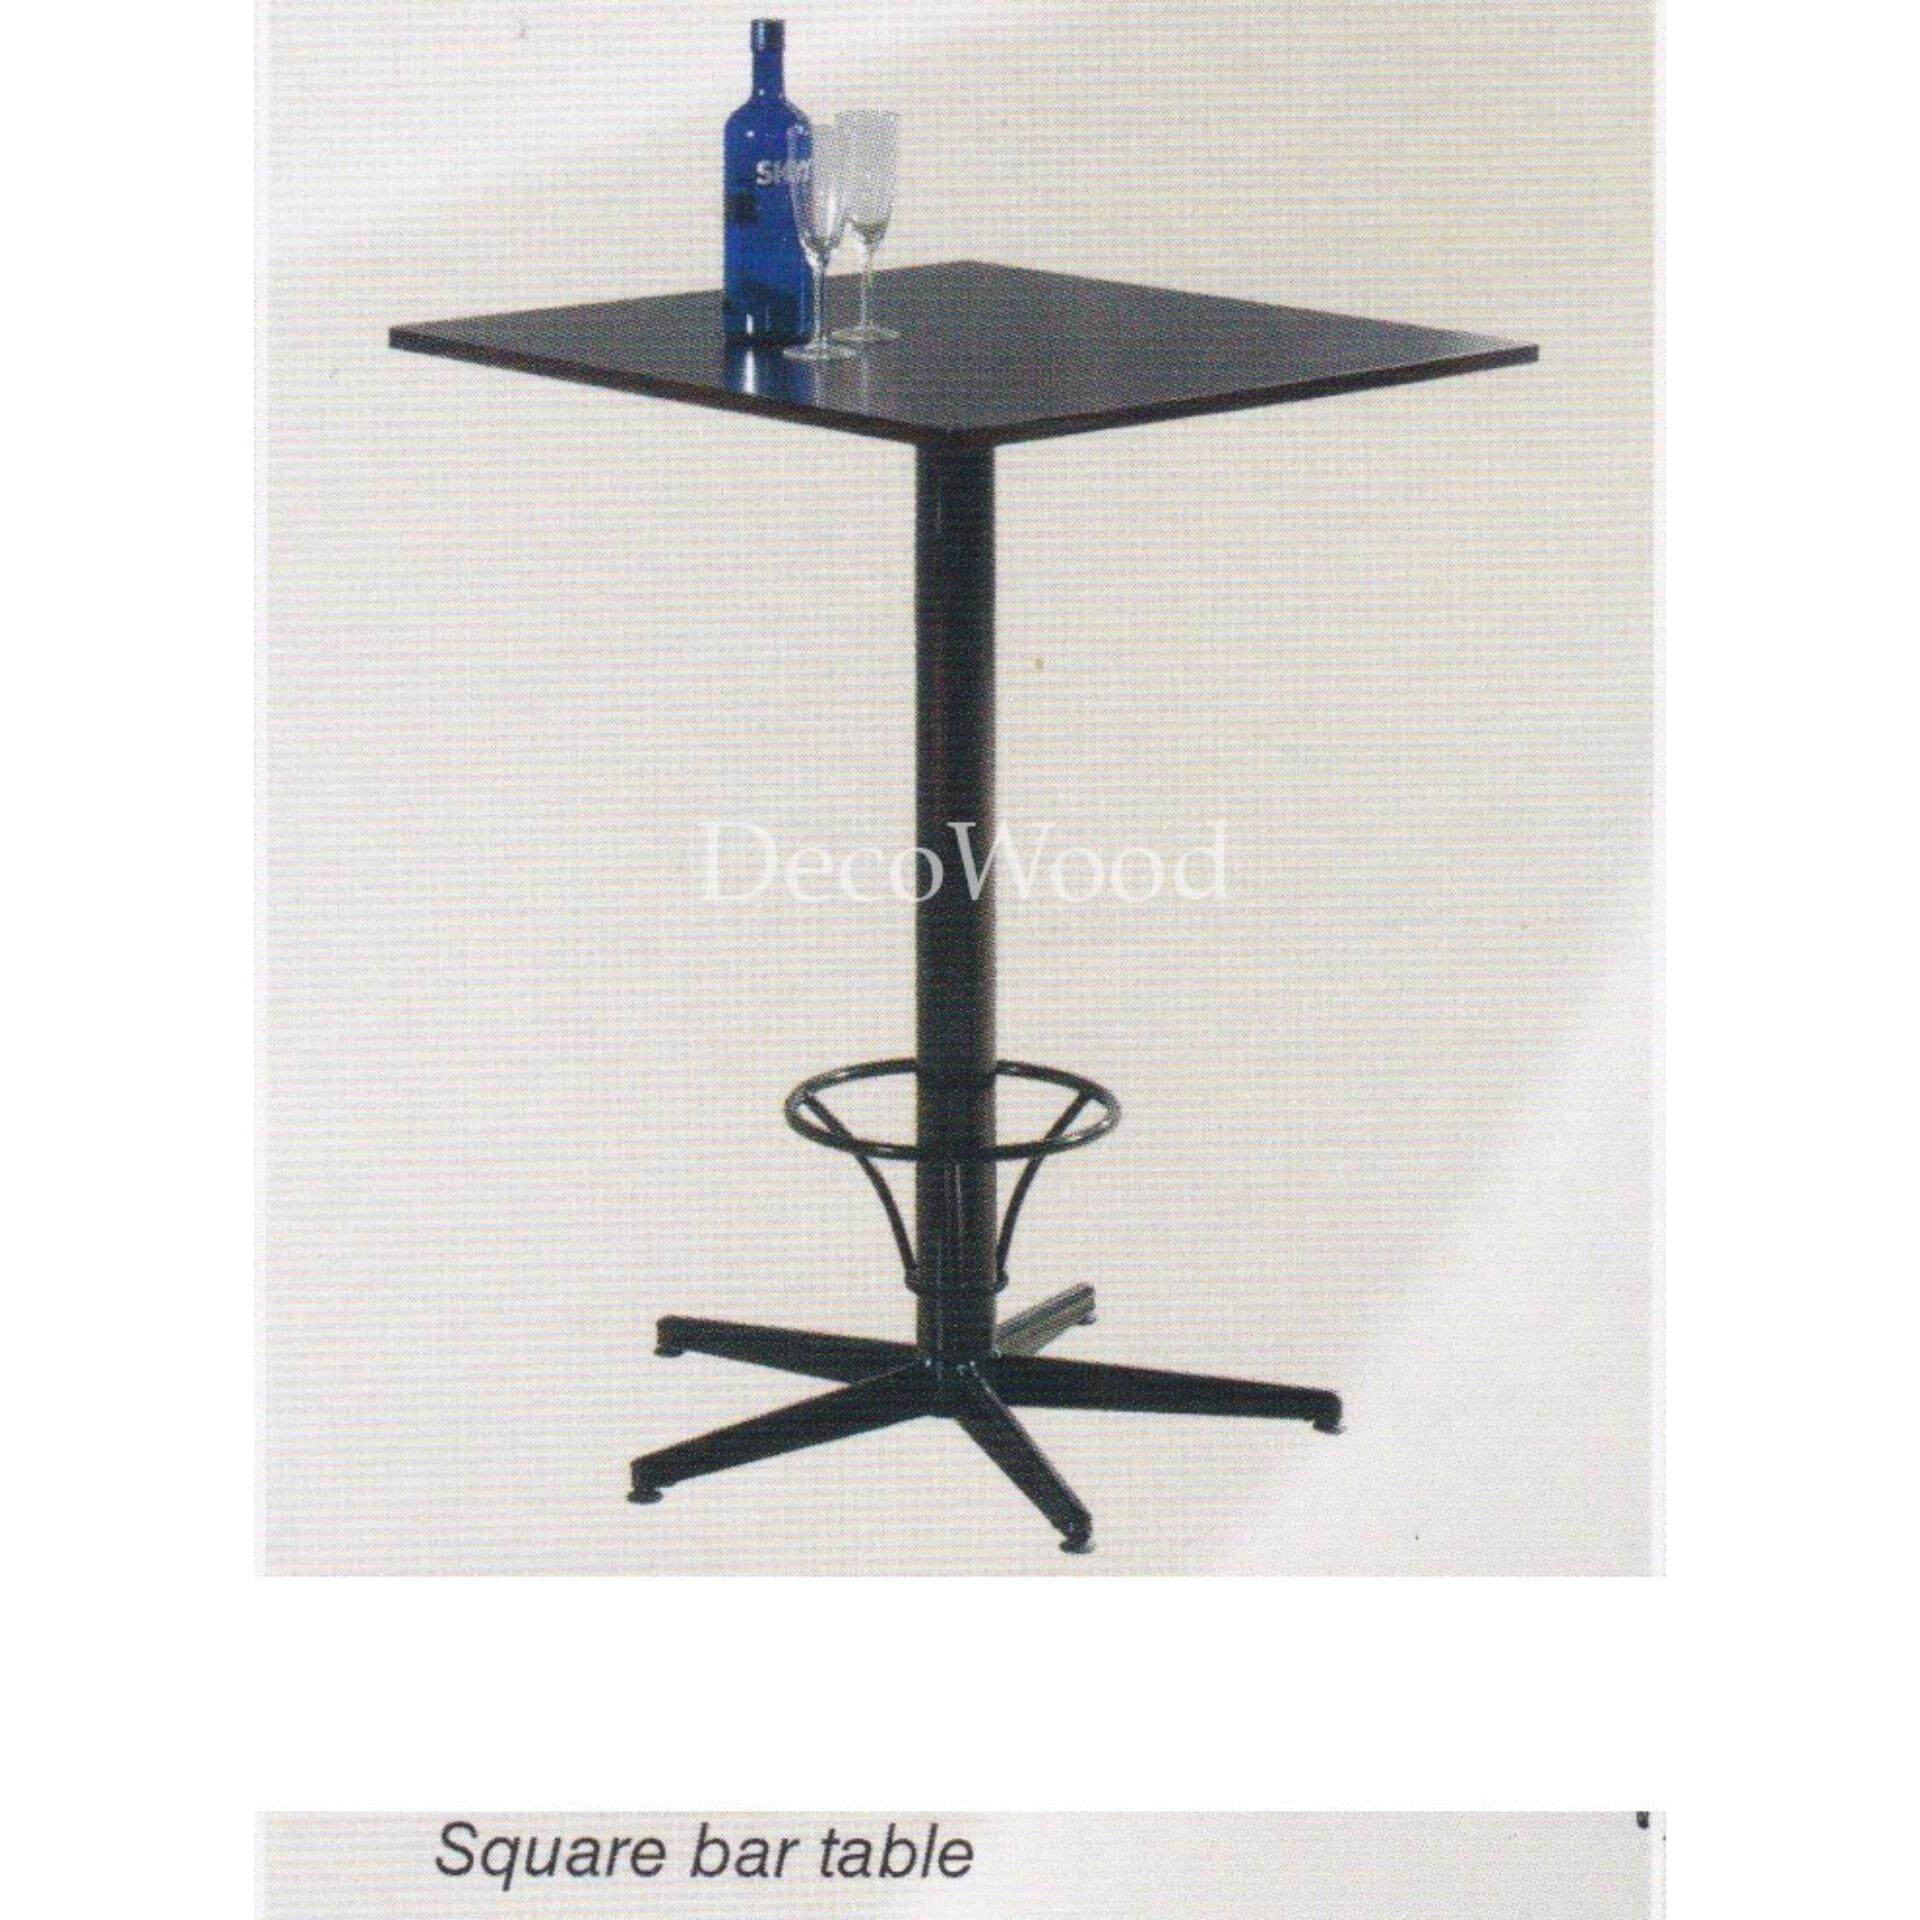 2-Feet Square Solid Wood Table/Bar Table/Disco Table/Pub Table/High Table/Dining Table/Writing Table/Mamak Table L600MM X W600MM X H1080MM